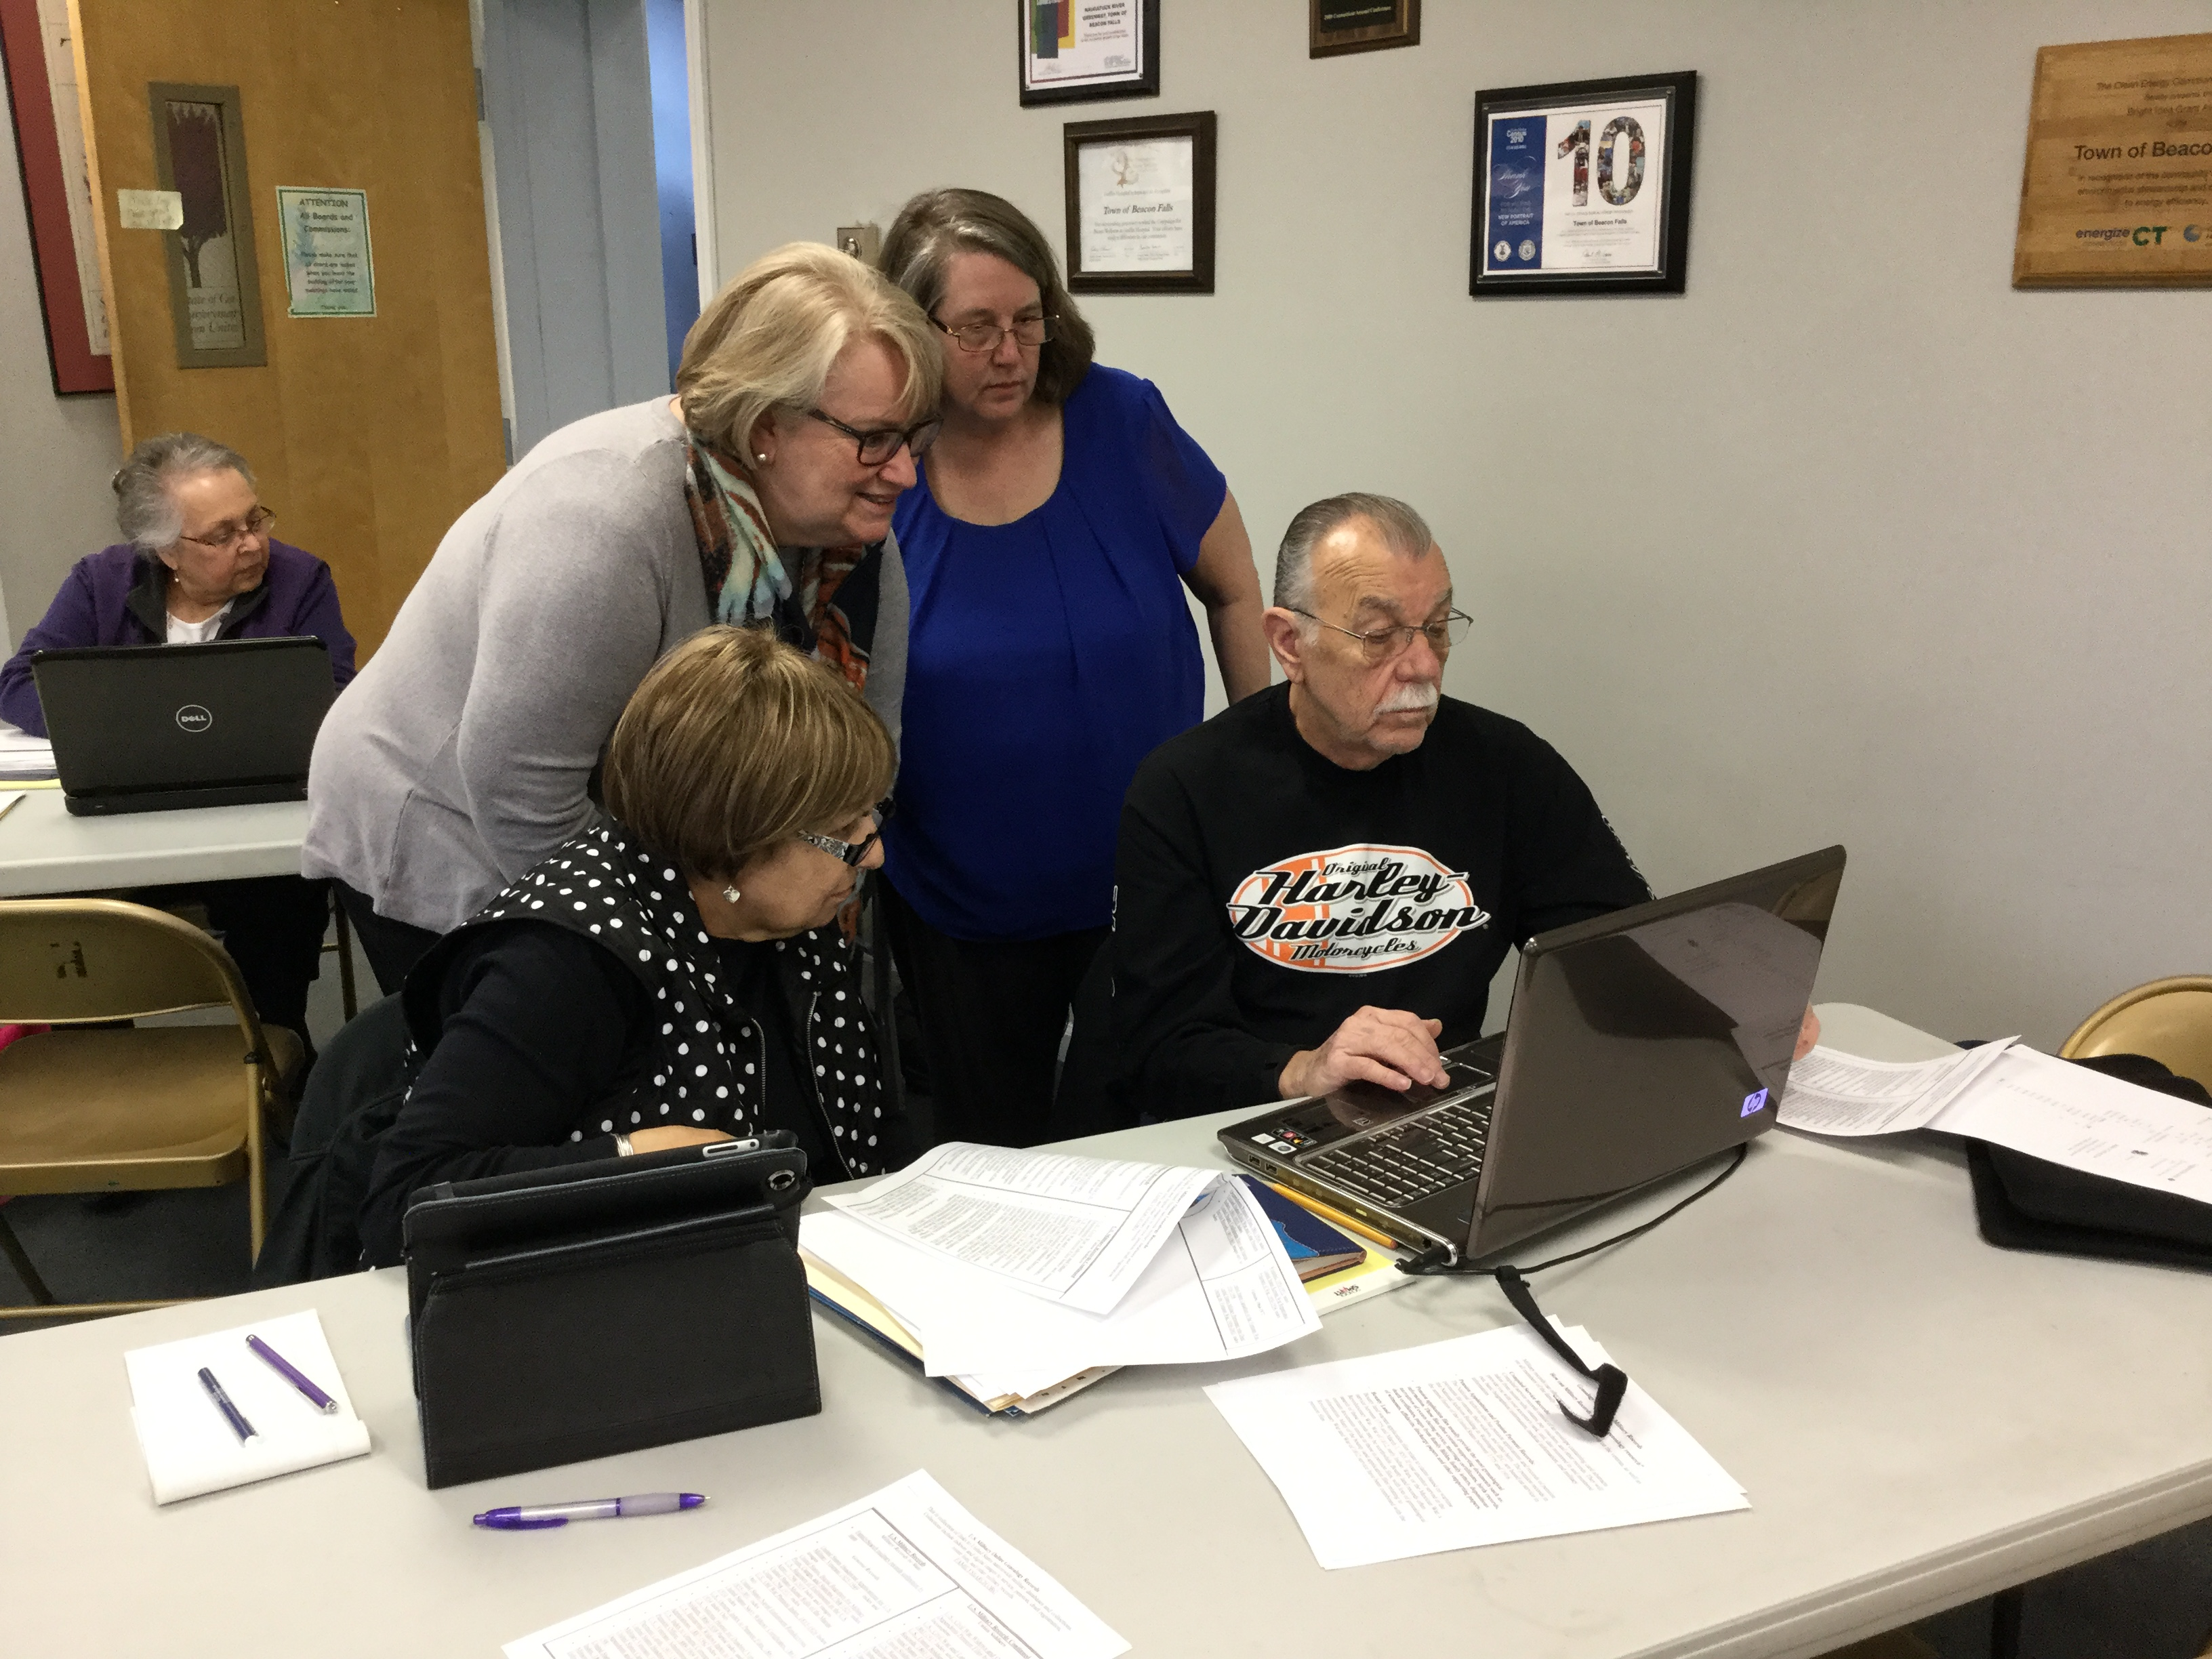 Participants in genealogy class at Beacon Falls PL